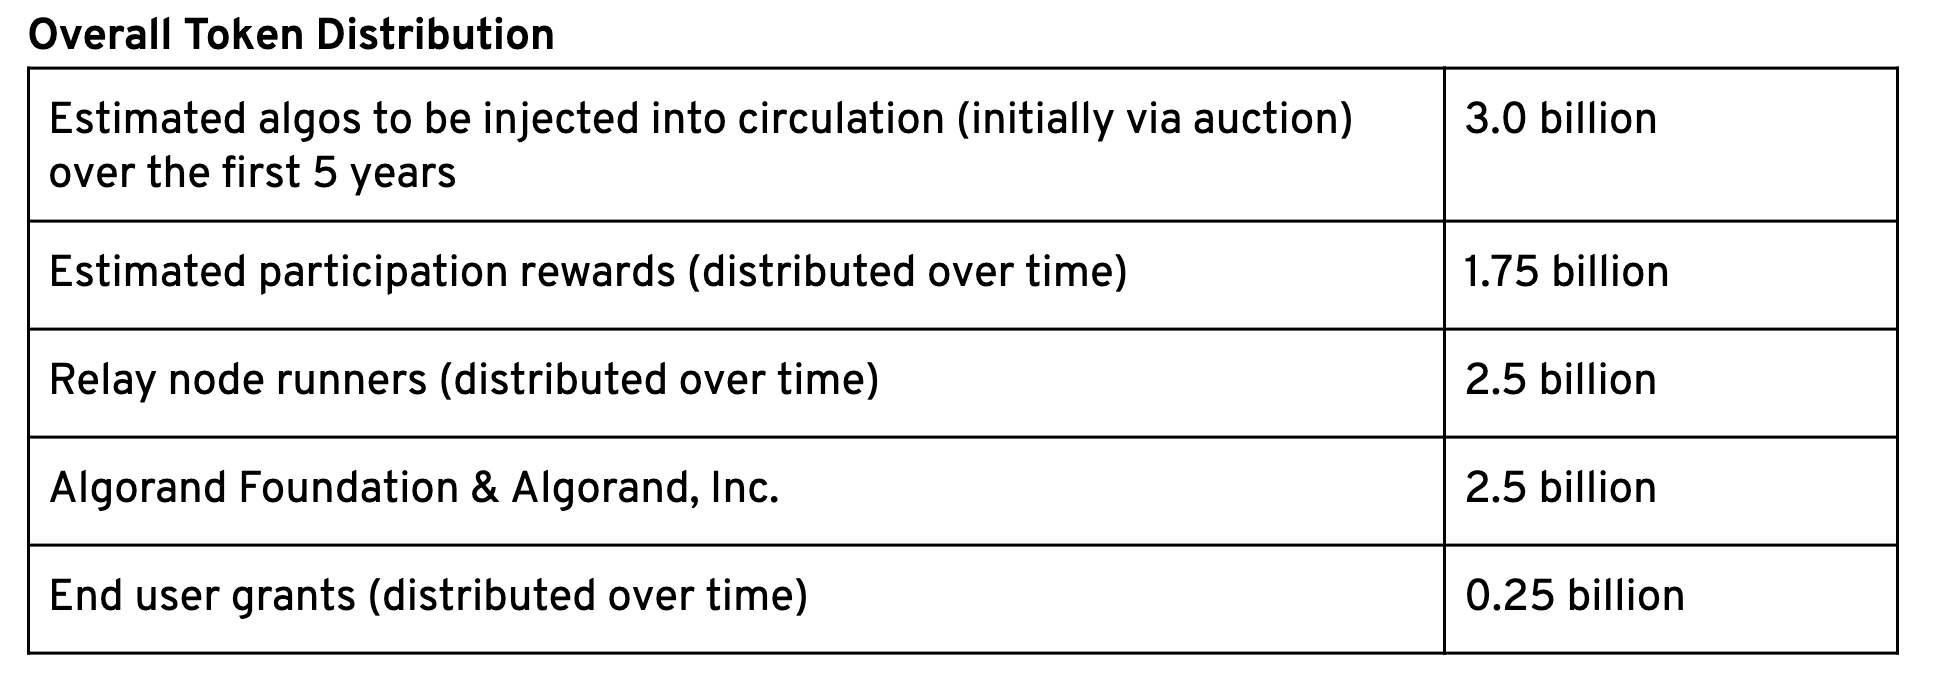 ALGO token distribution